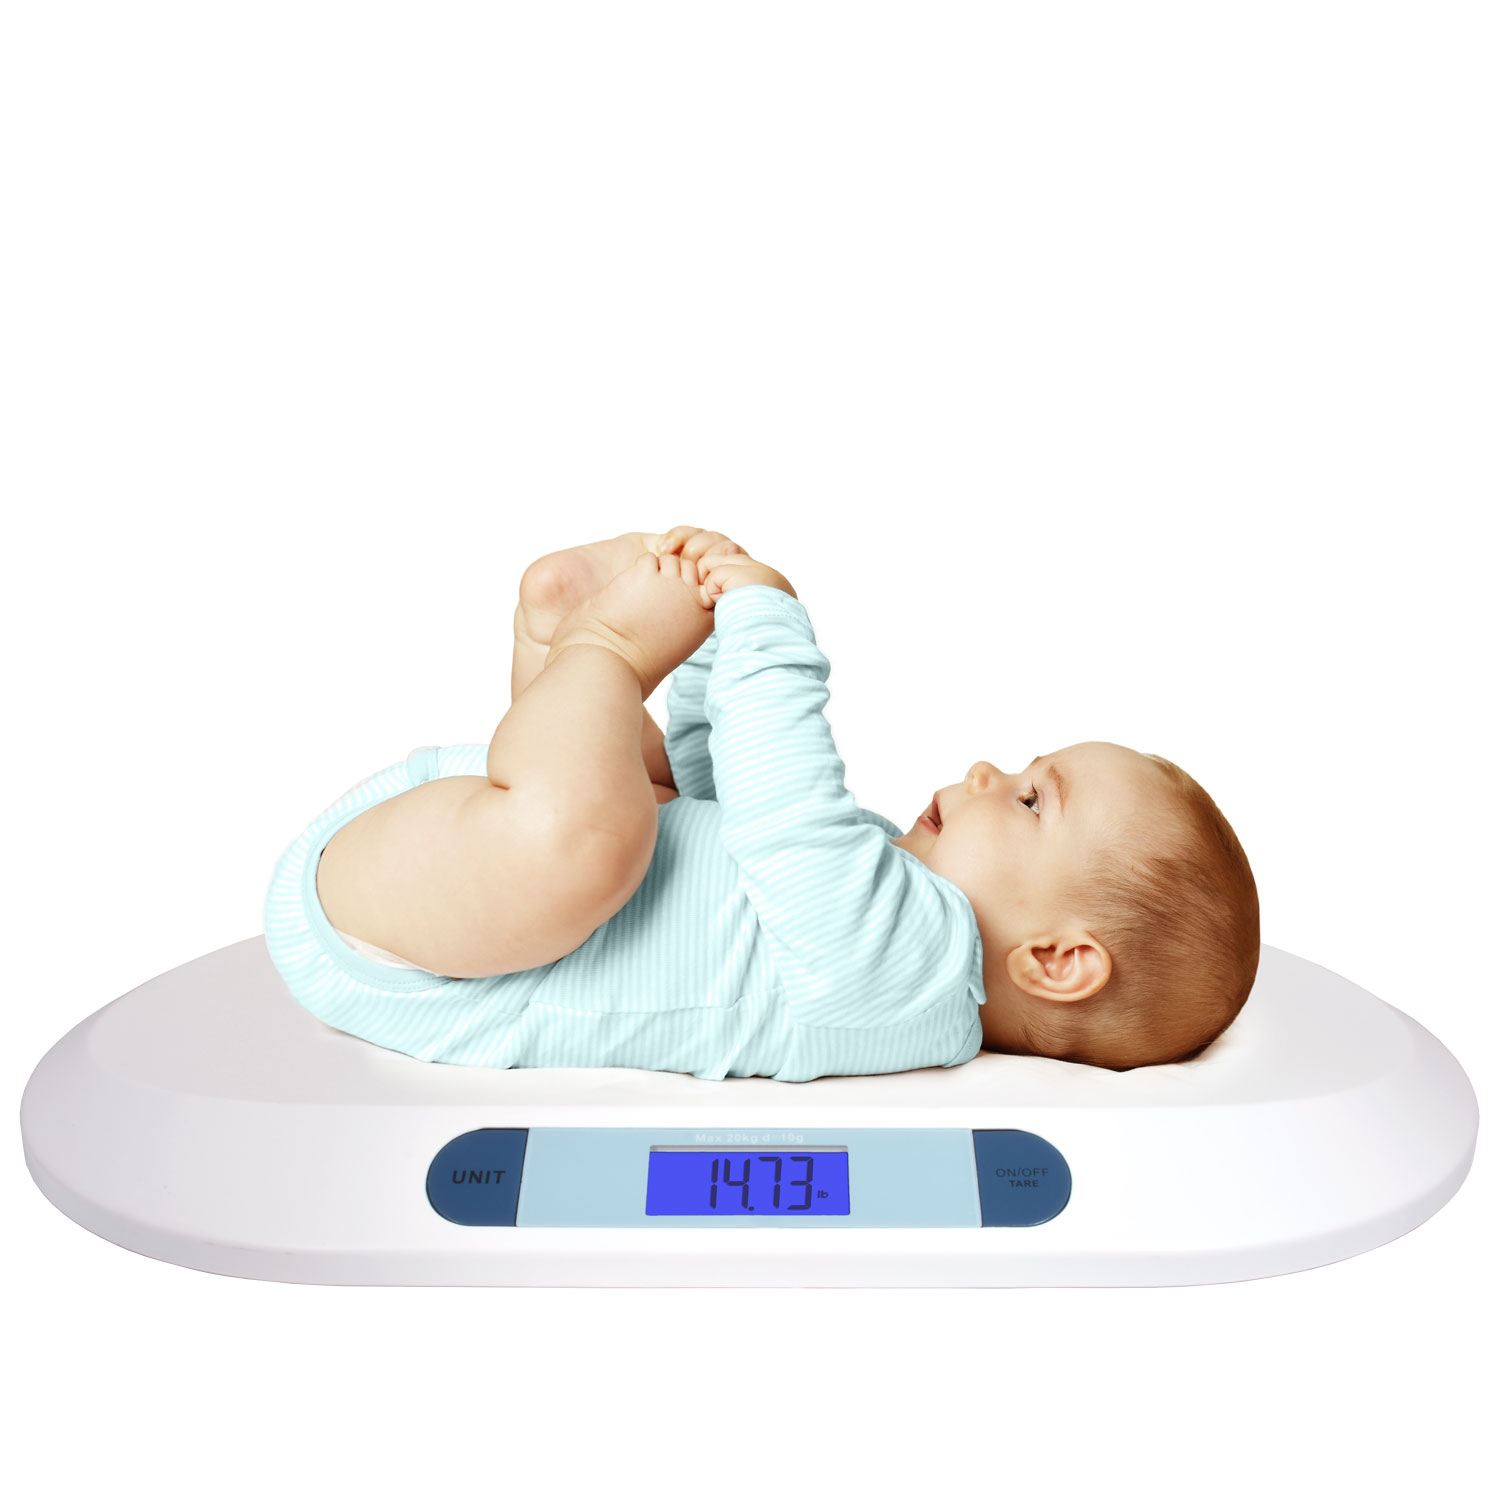 Smart Weigh Comfort Digital Baby Scale Large Backlit Lcd